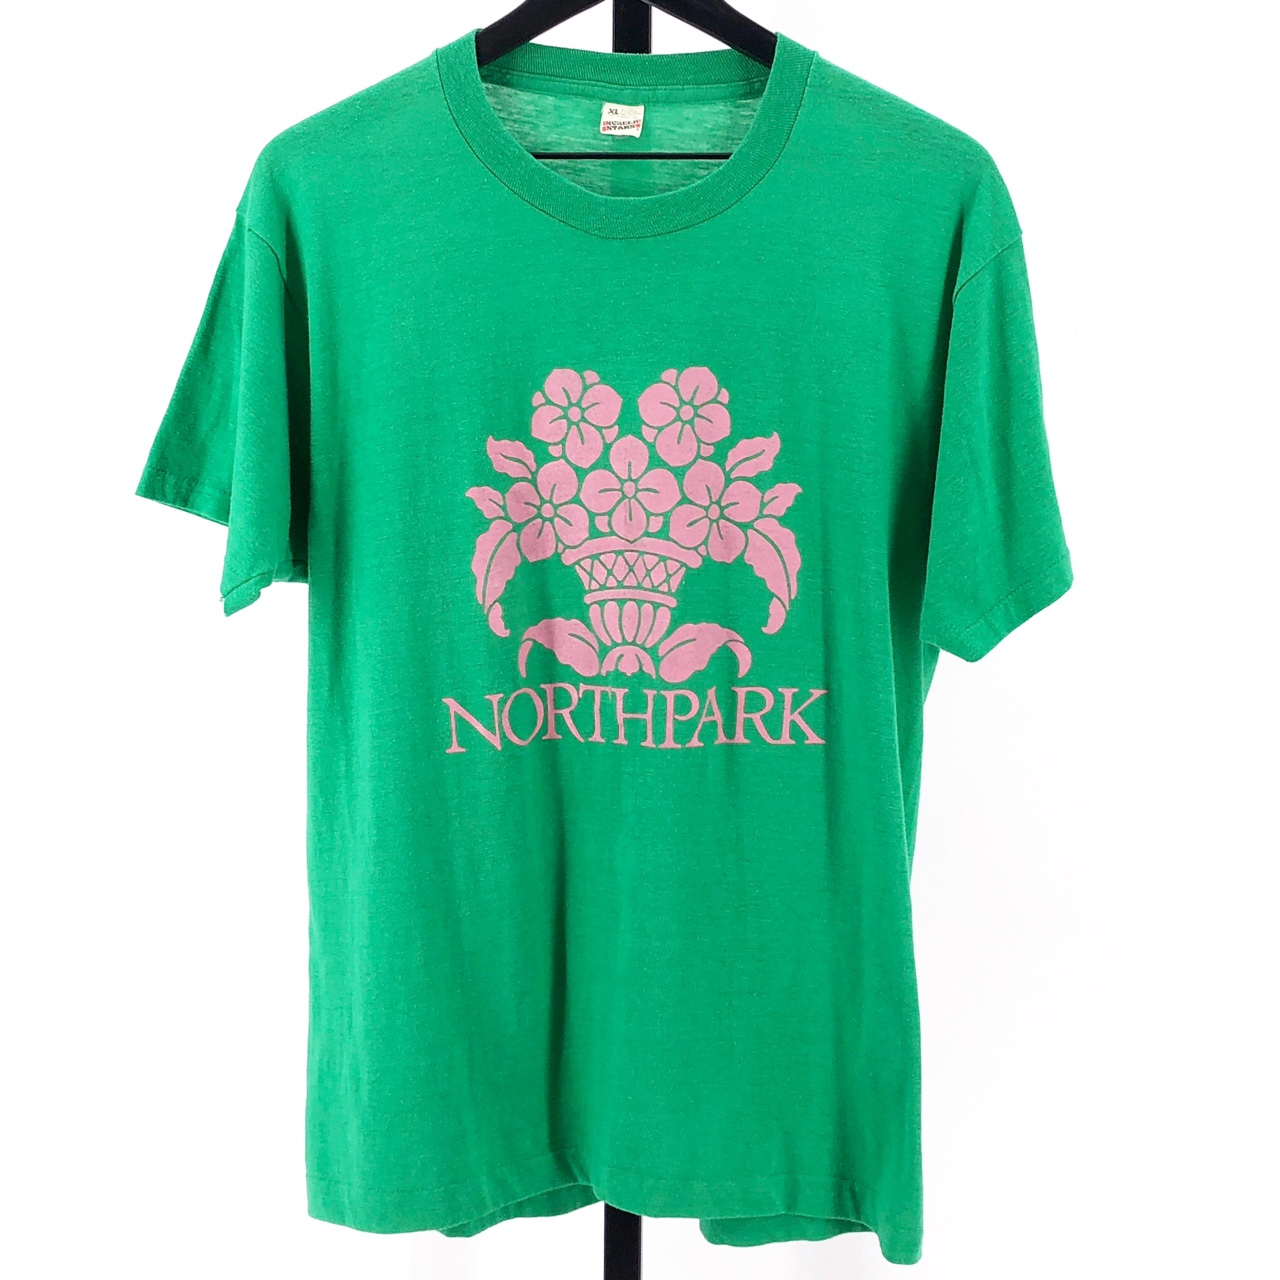 Product Image 1 - 🌸 80s vintage Northpark t